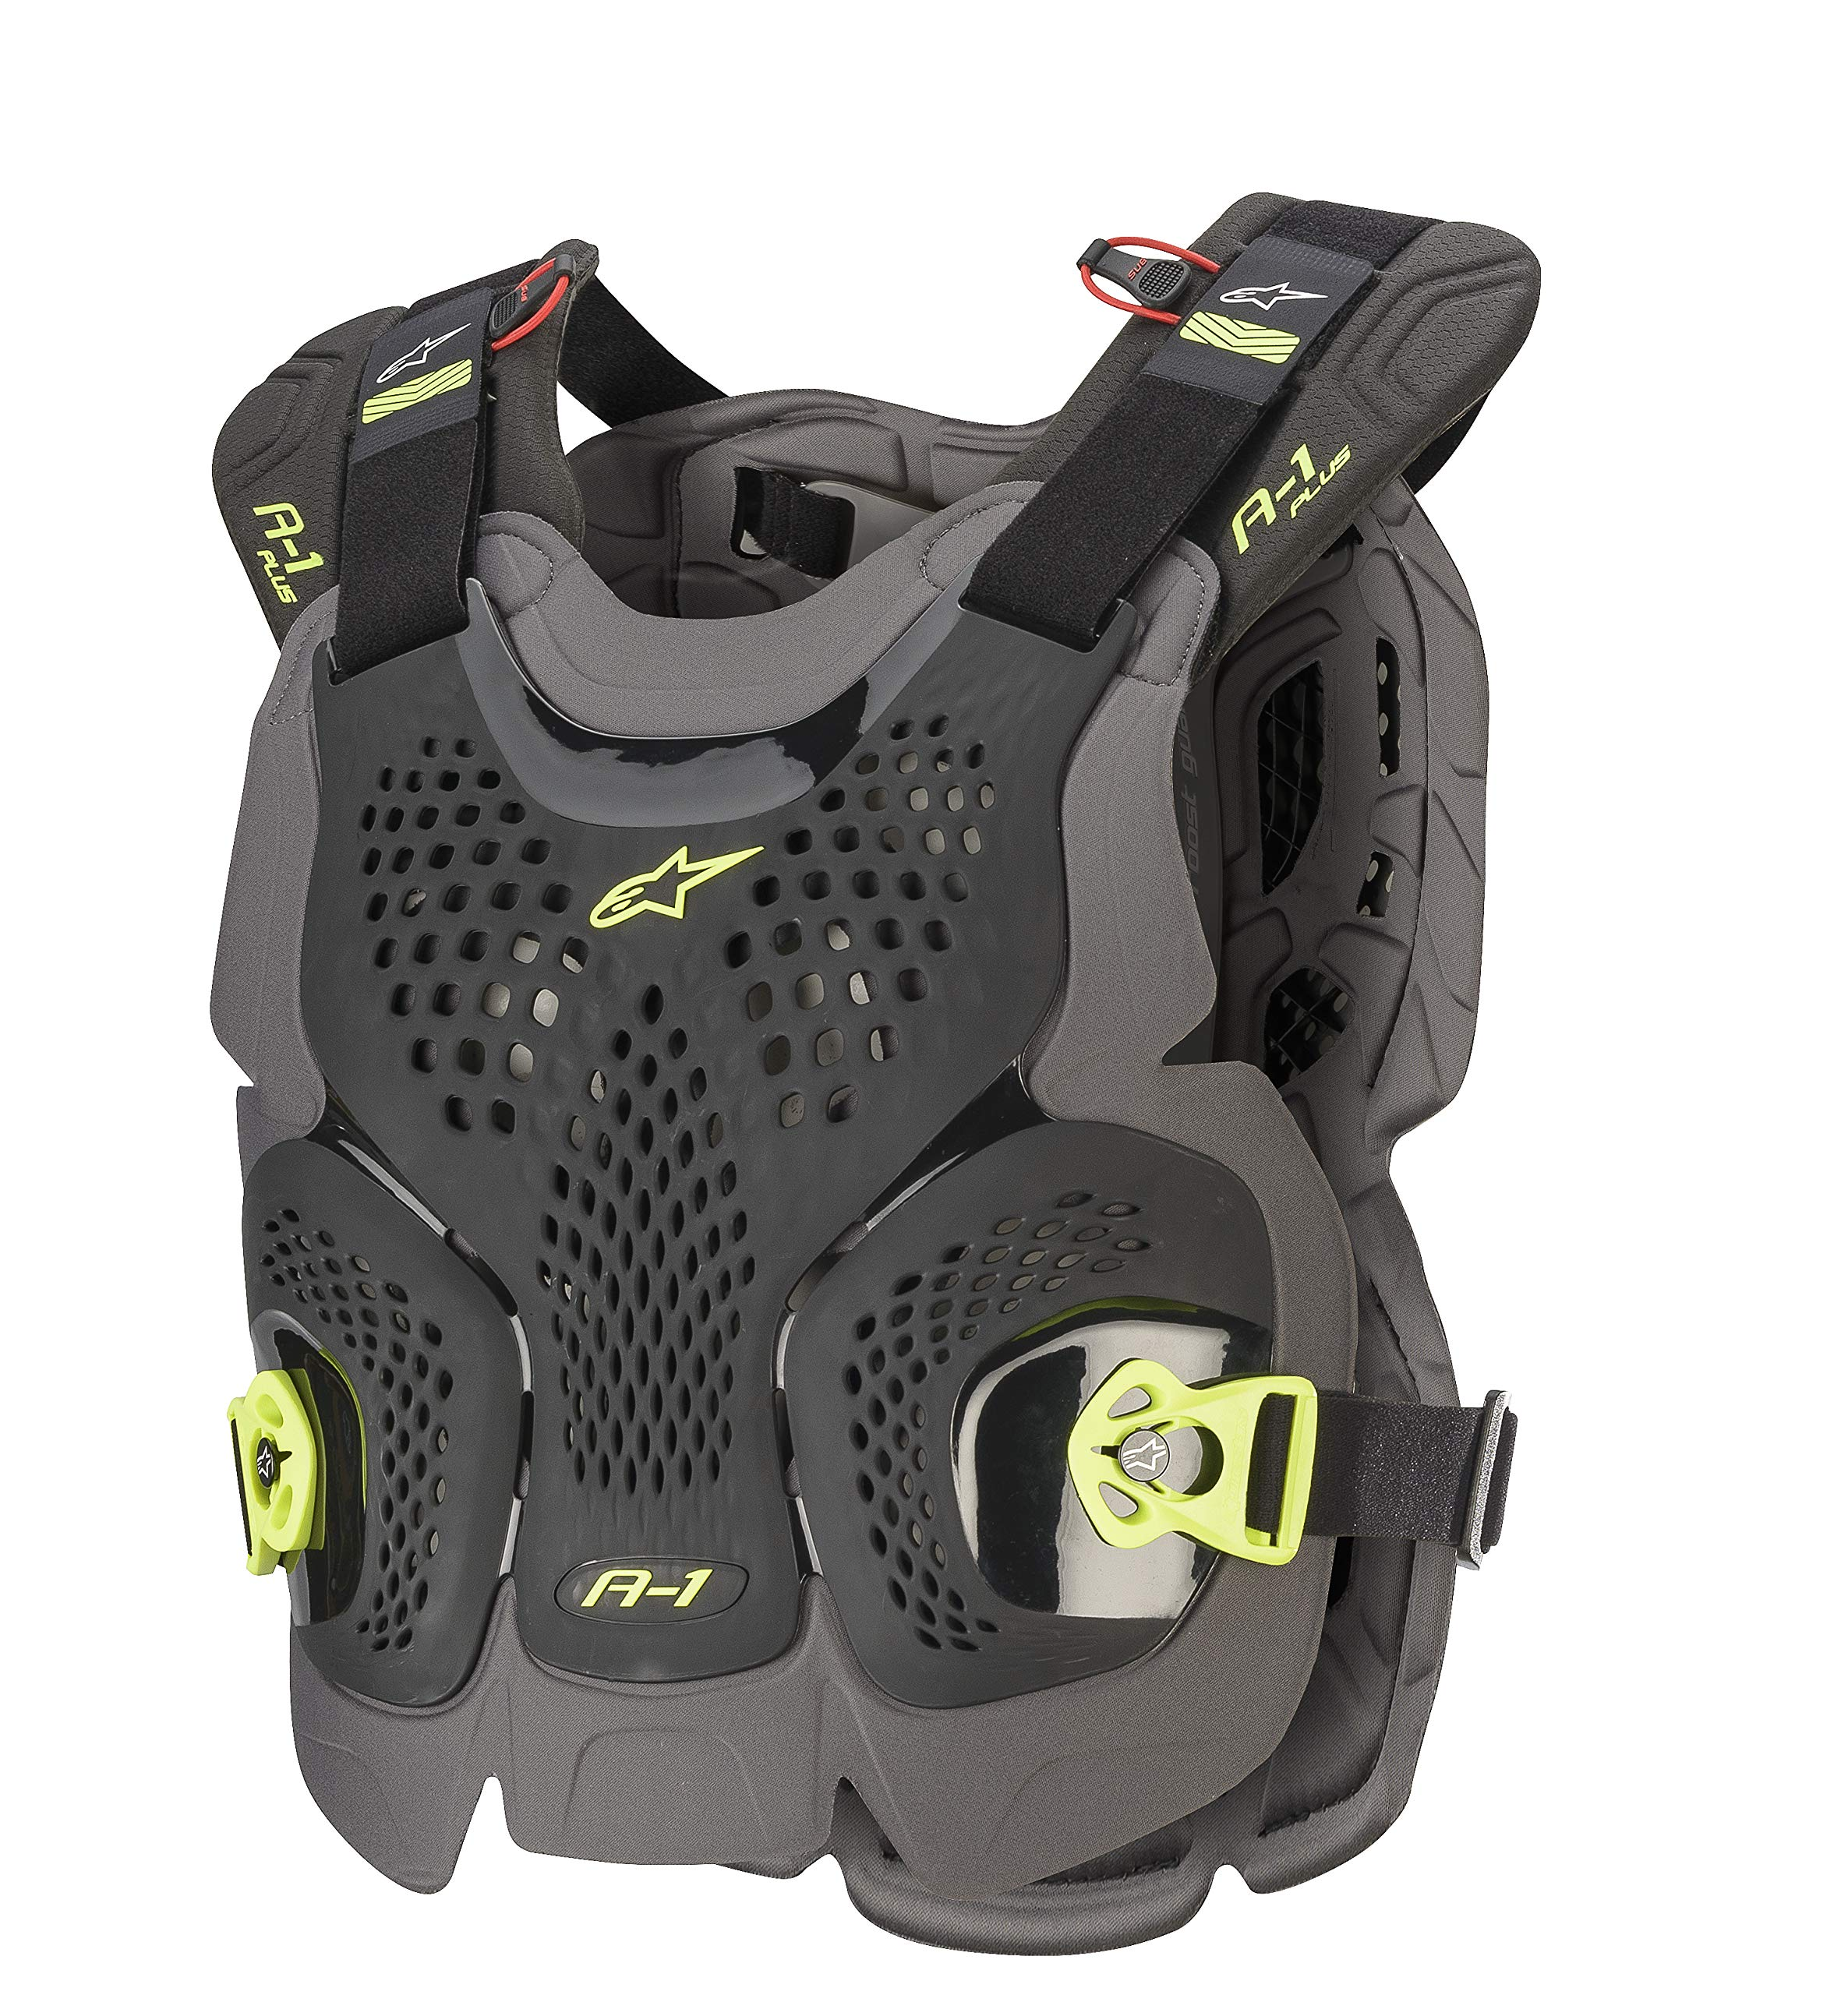 A-1 PLUS CHEST PROTECTOR (XXL) by Alpinestars